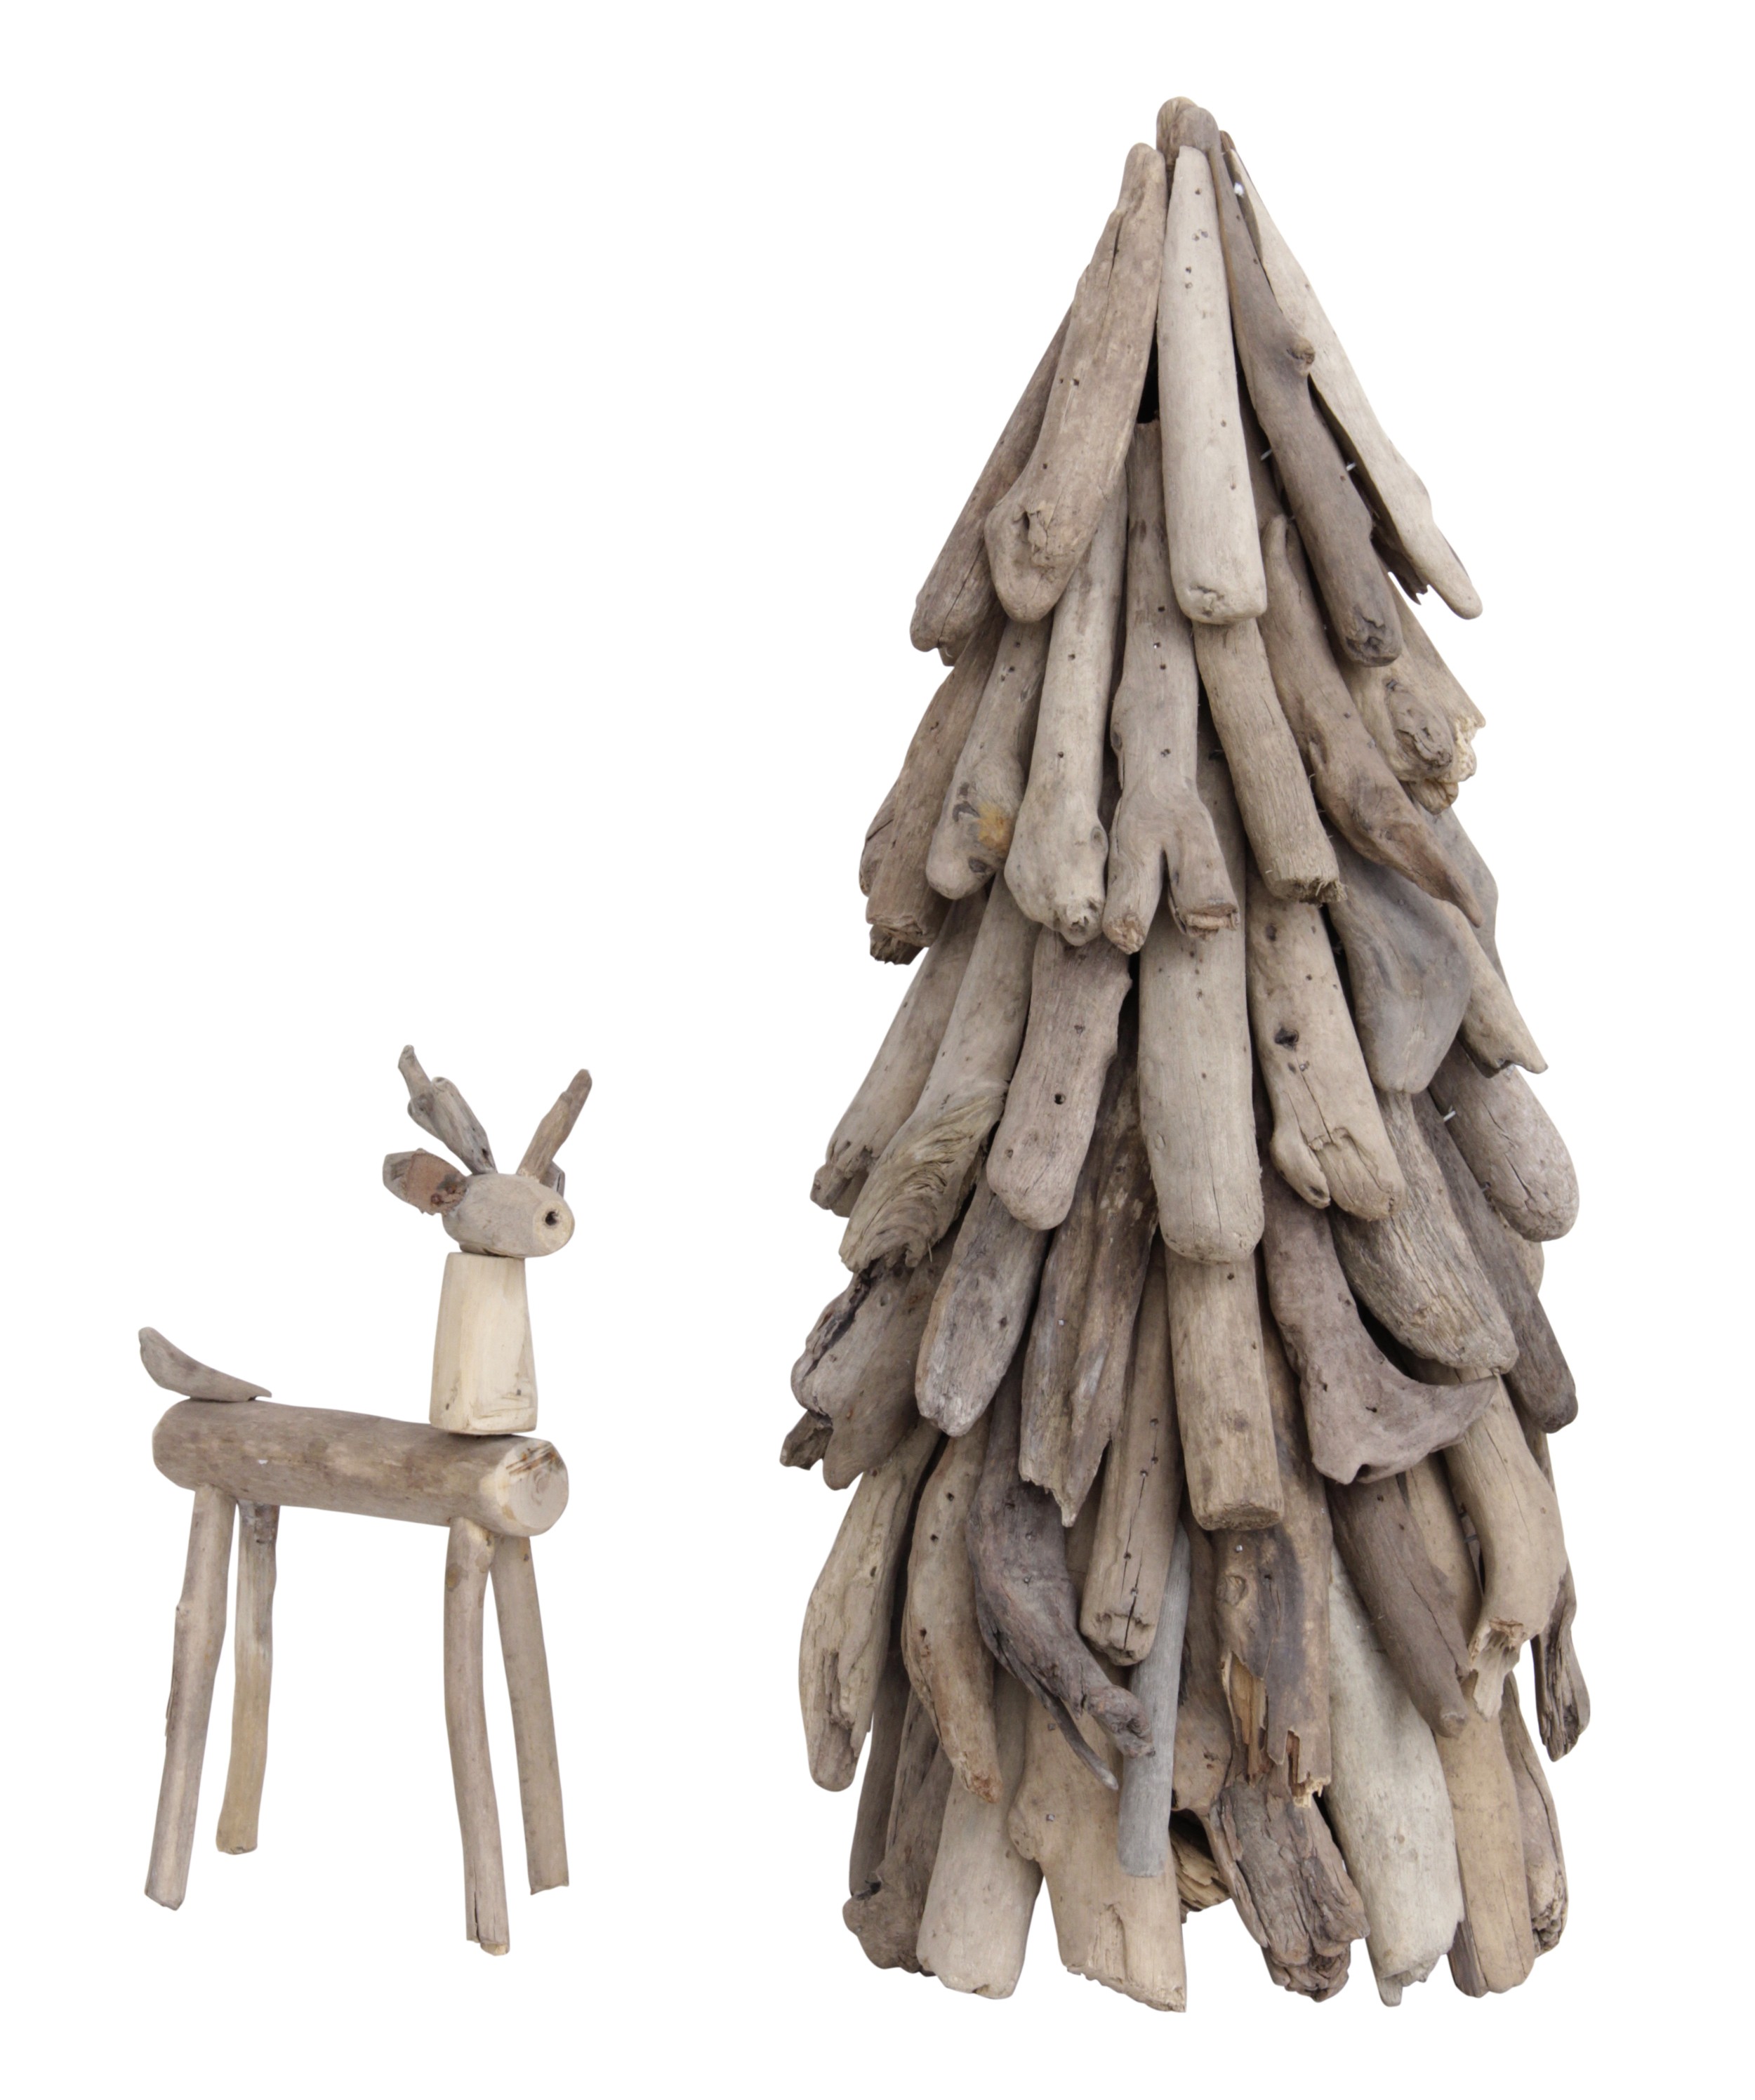 driftwood decorative tree+reindeer.jpg